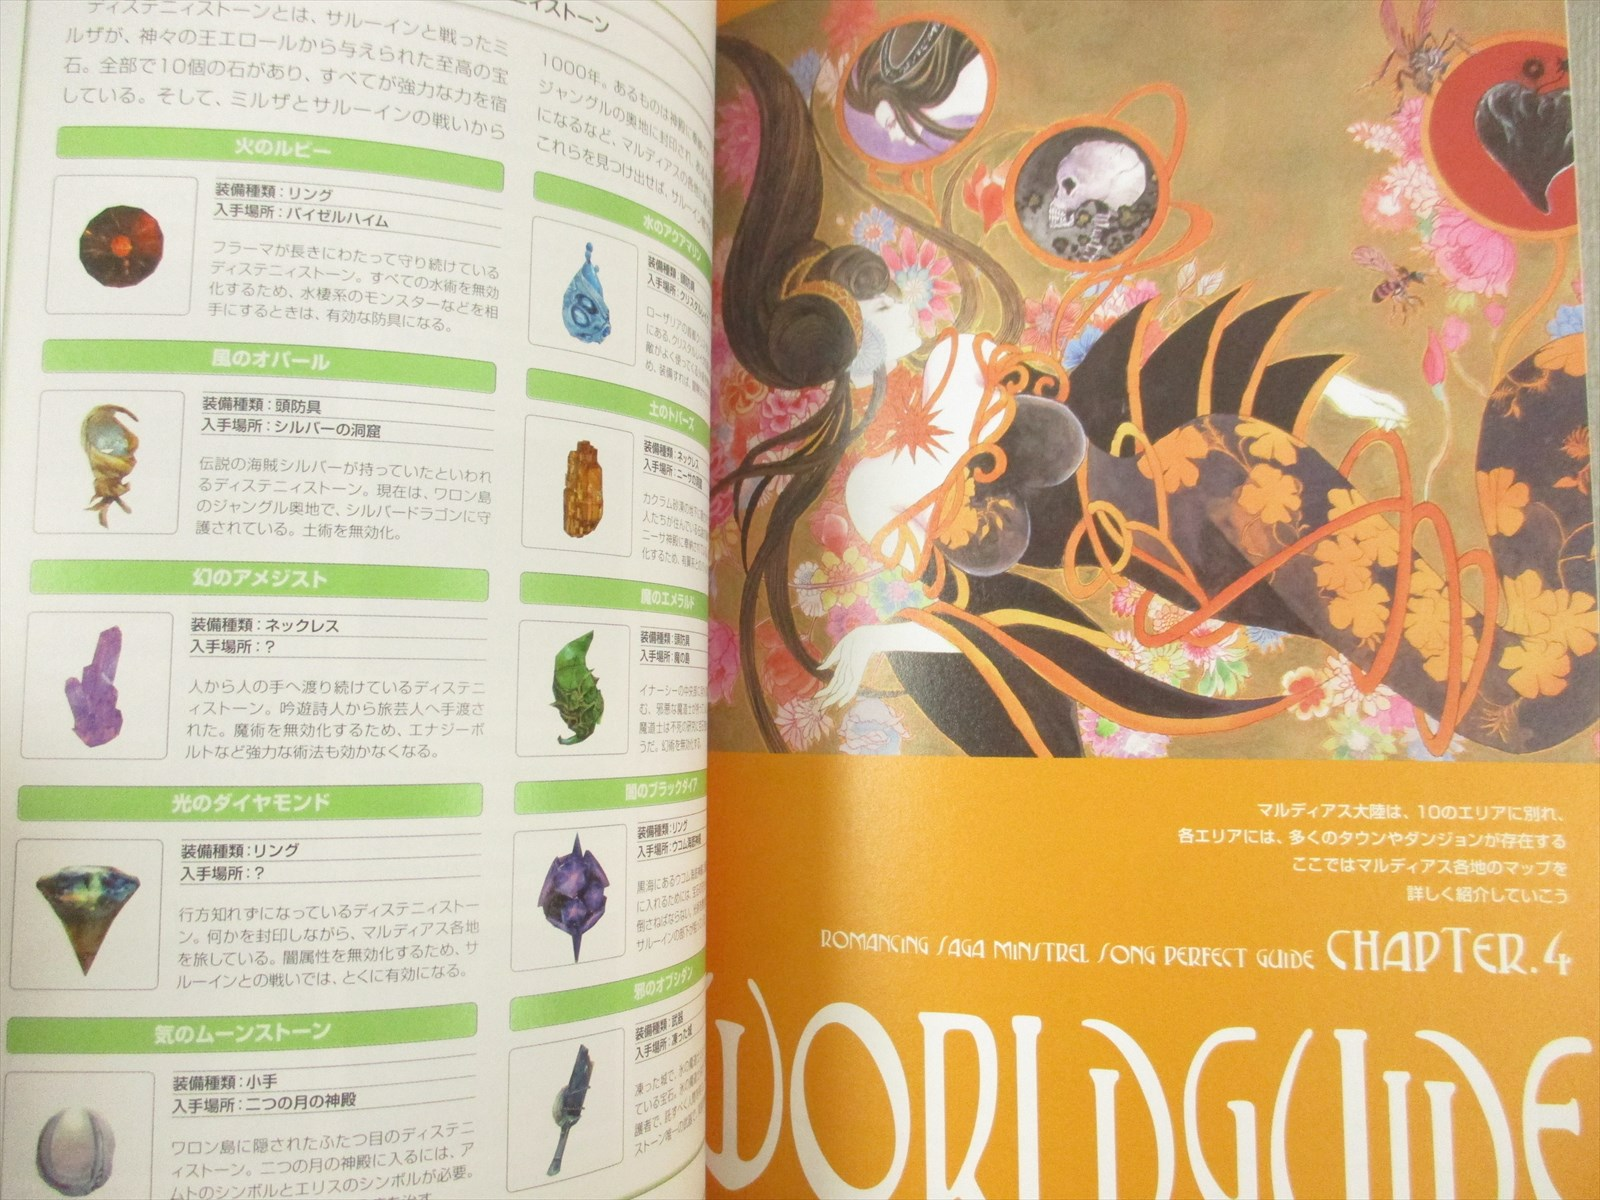 Details about ROMANCING SAGA Minstrel Song Perfect Guide Book Sony PS2 EB31*